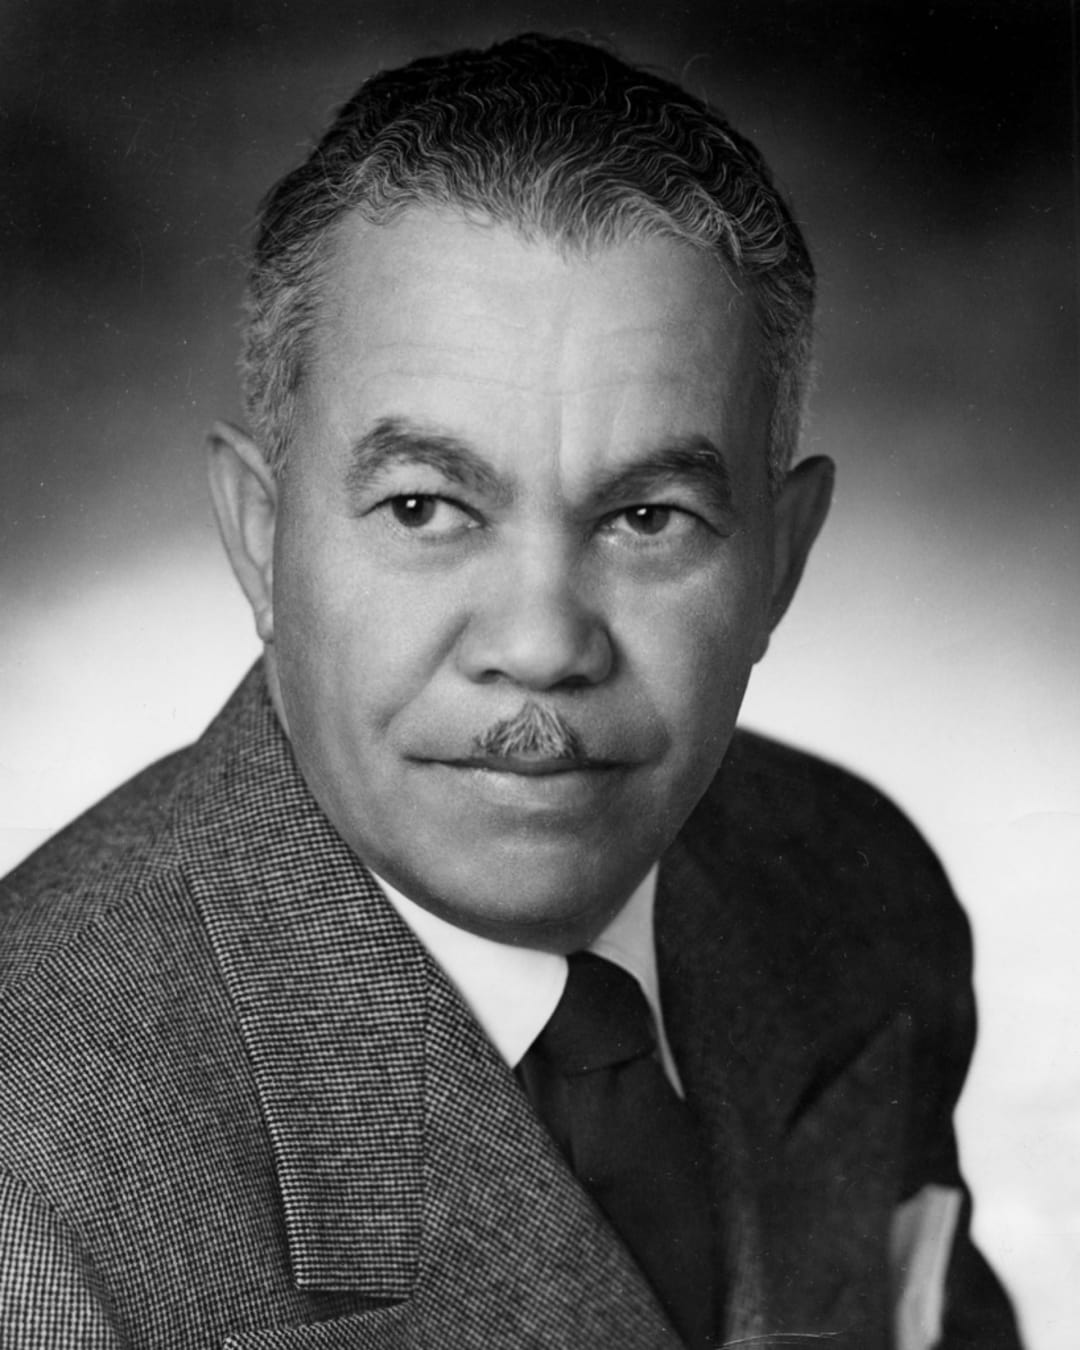 paul revere williams faia